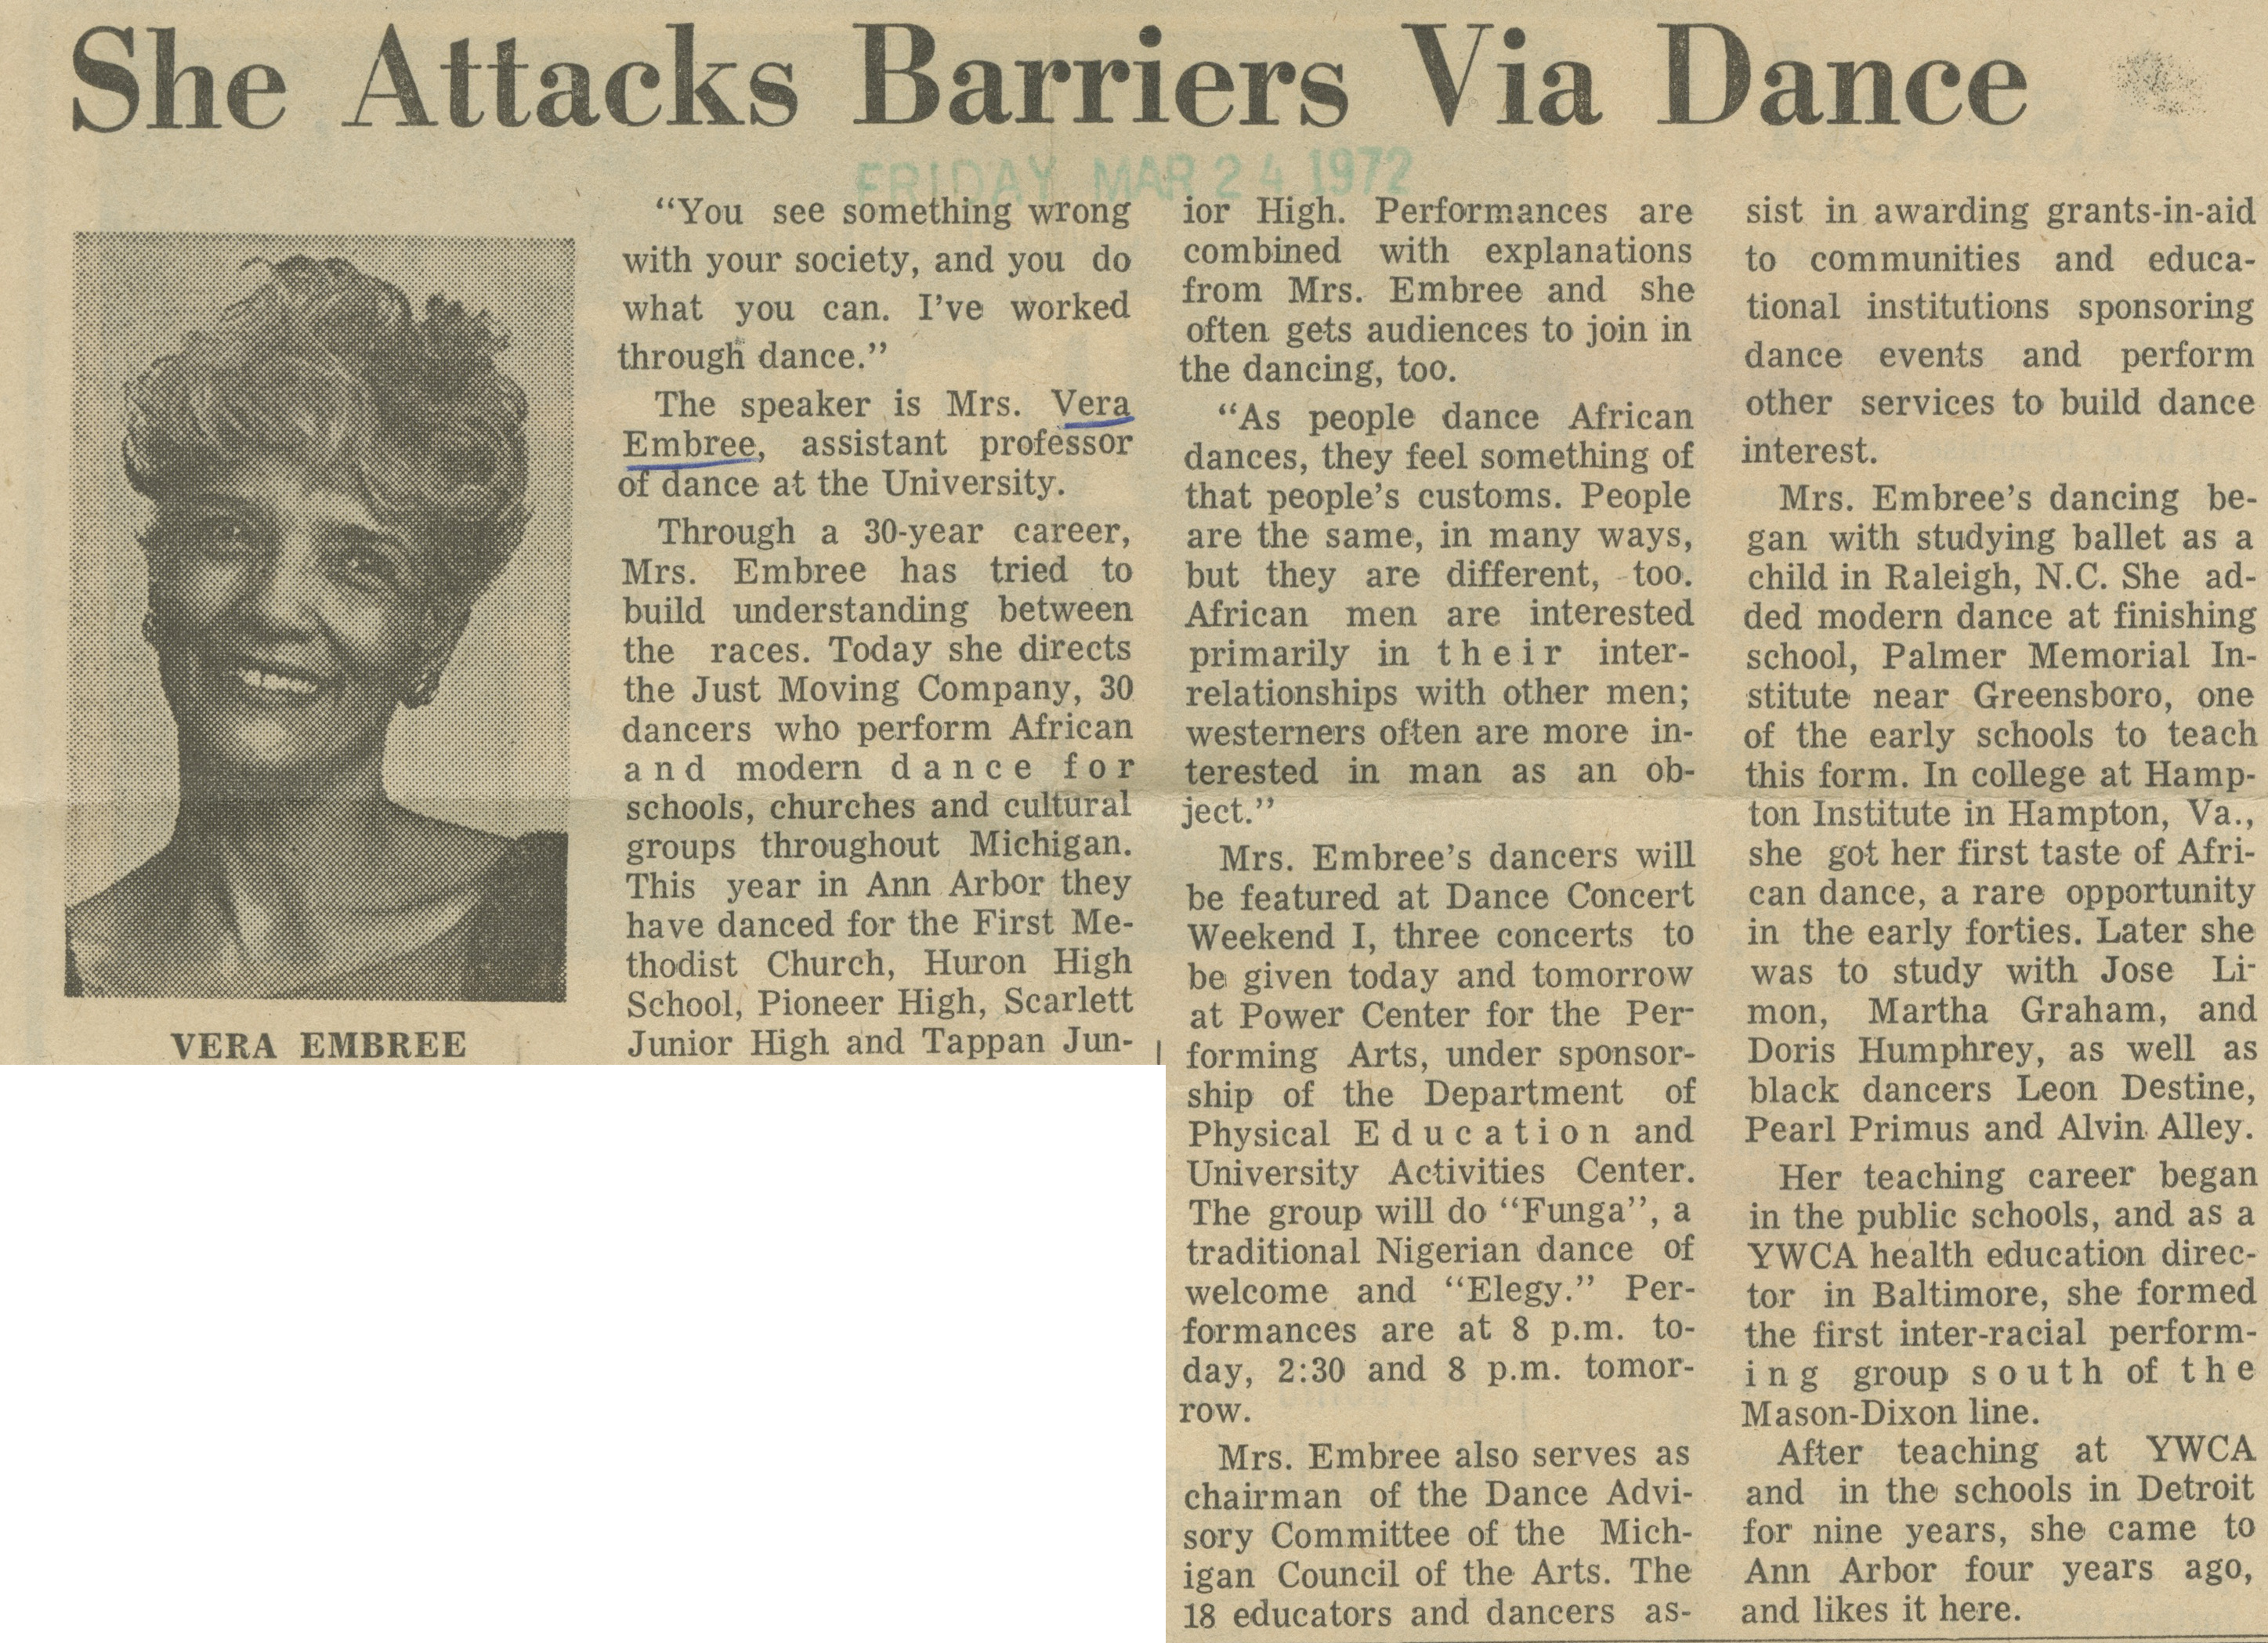 She Attacks Barriers Via Dance image